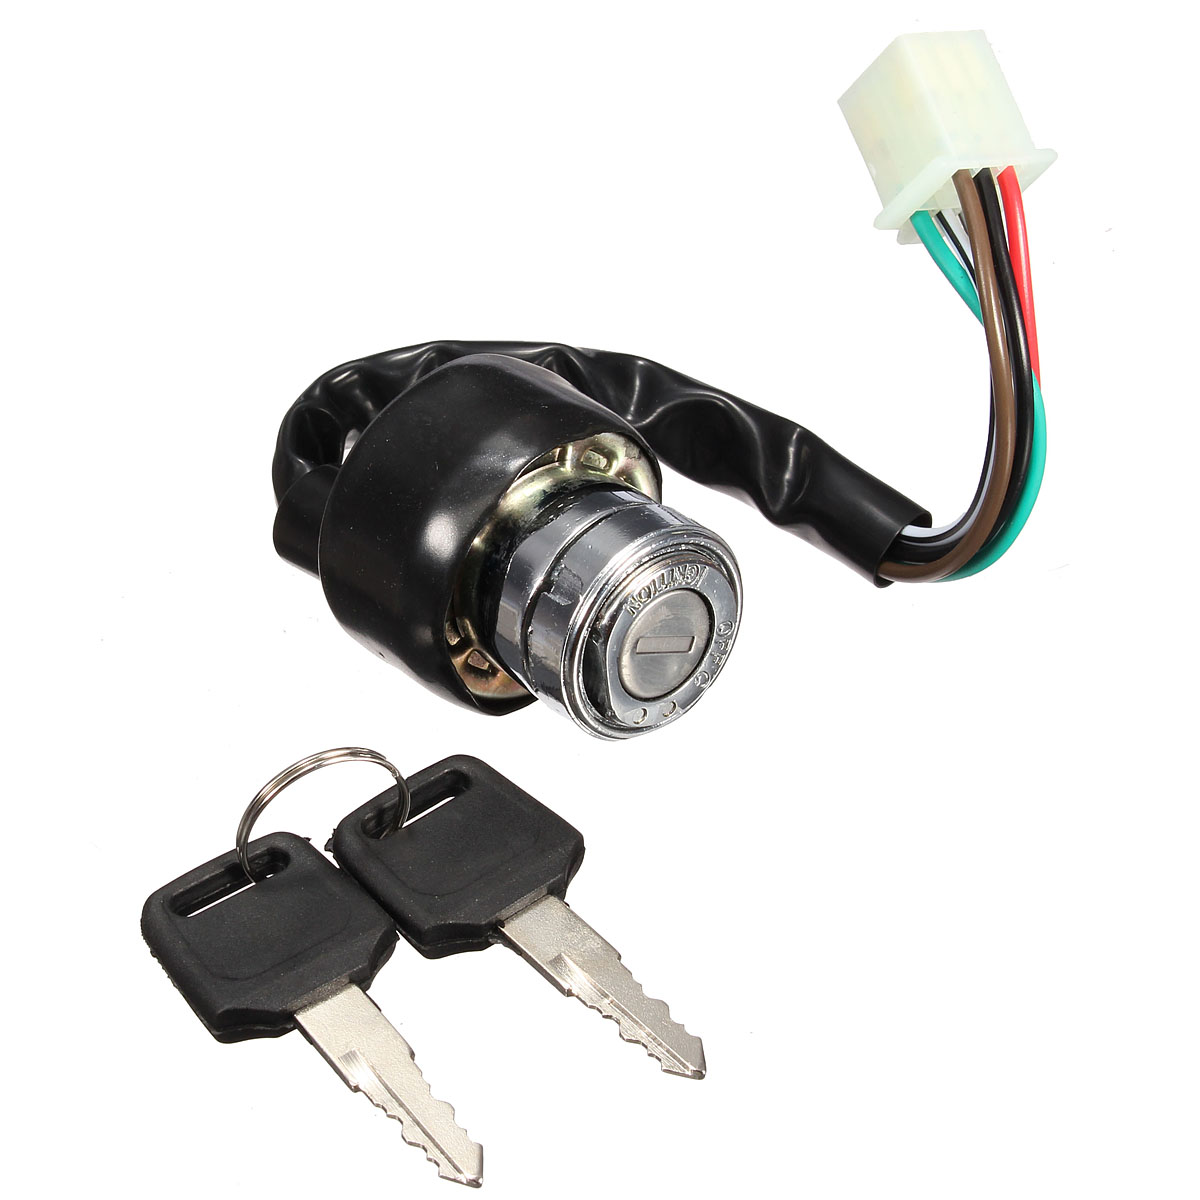 popular ignition switch wiring buy cheap ignition switch wiring universal motorcycle atv off road vehicles 6 wire ignition switch 2 keys